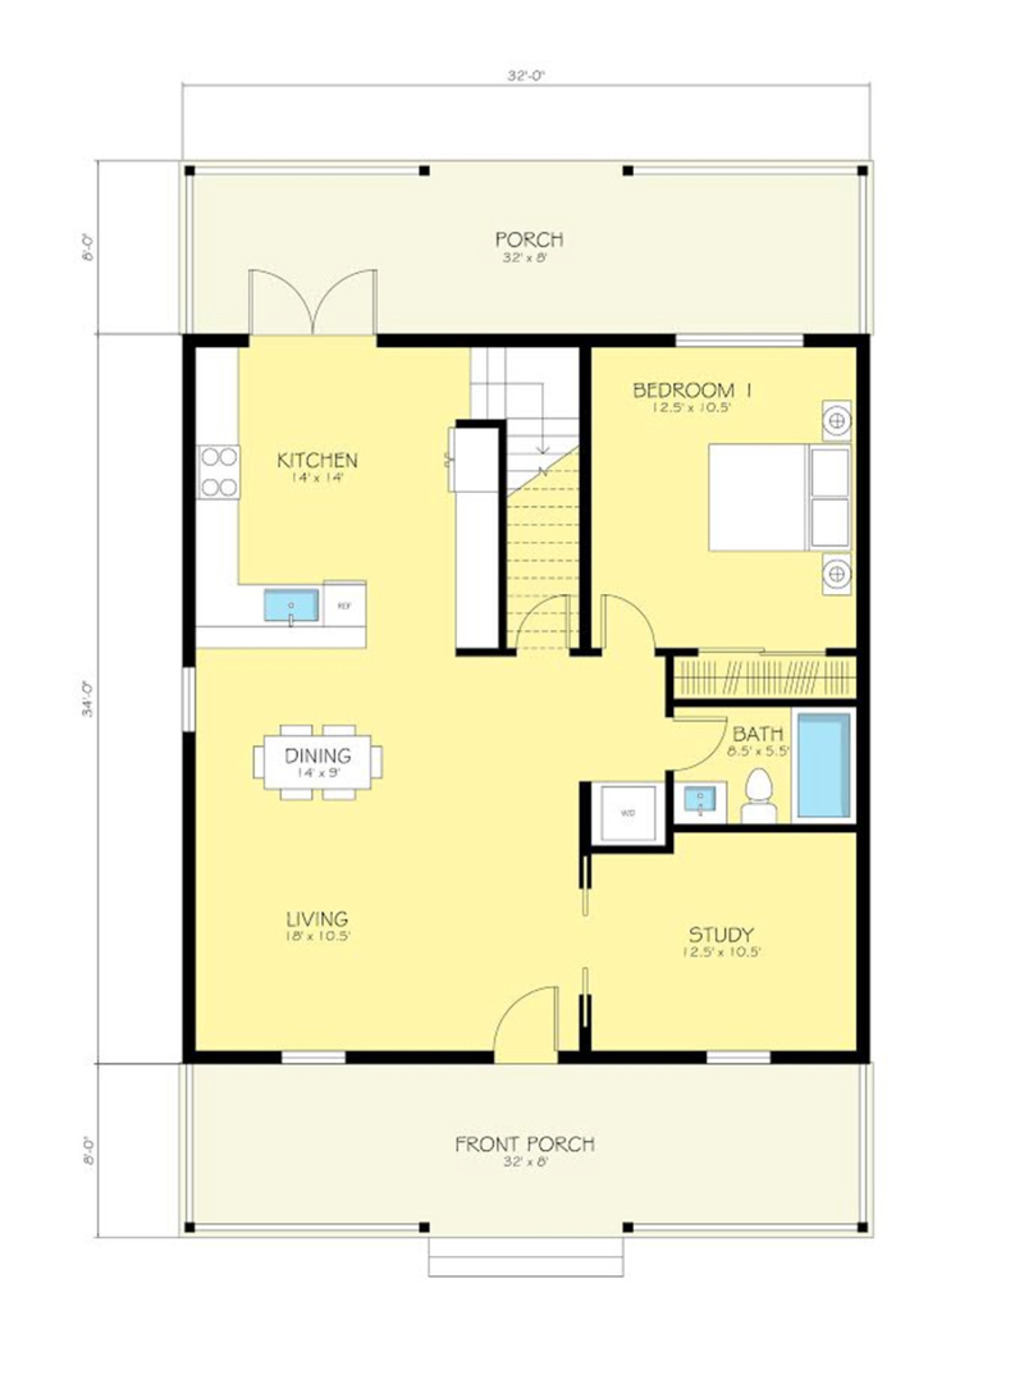 Program to Draw House Plans Free Awesome House Plan Drawing